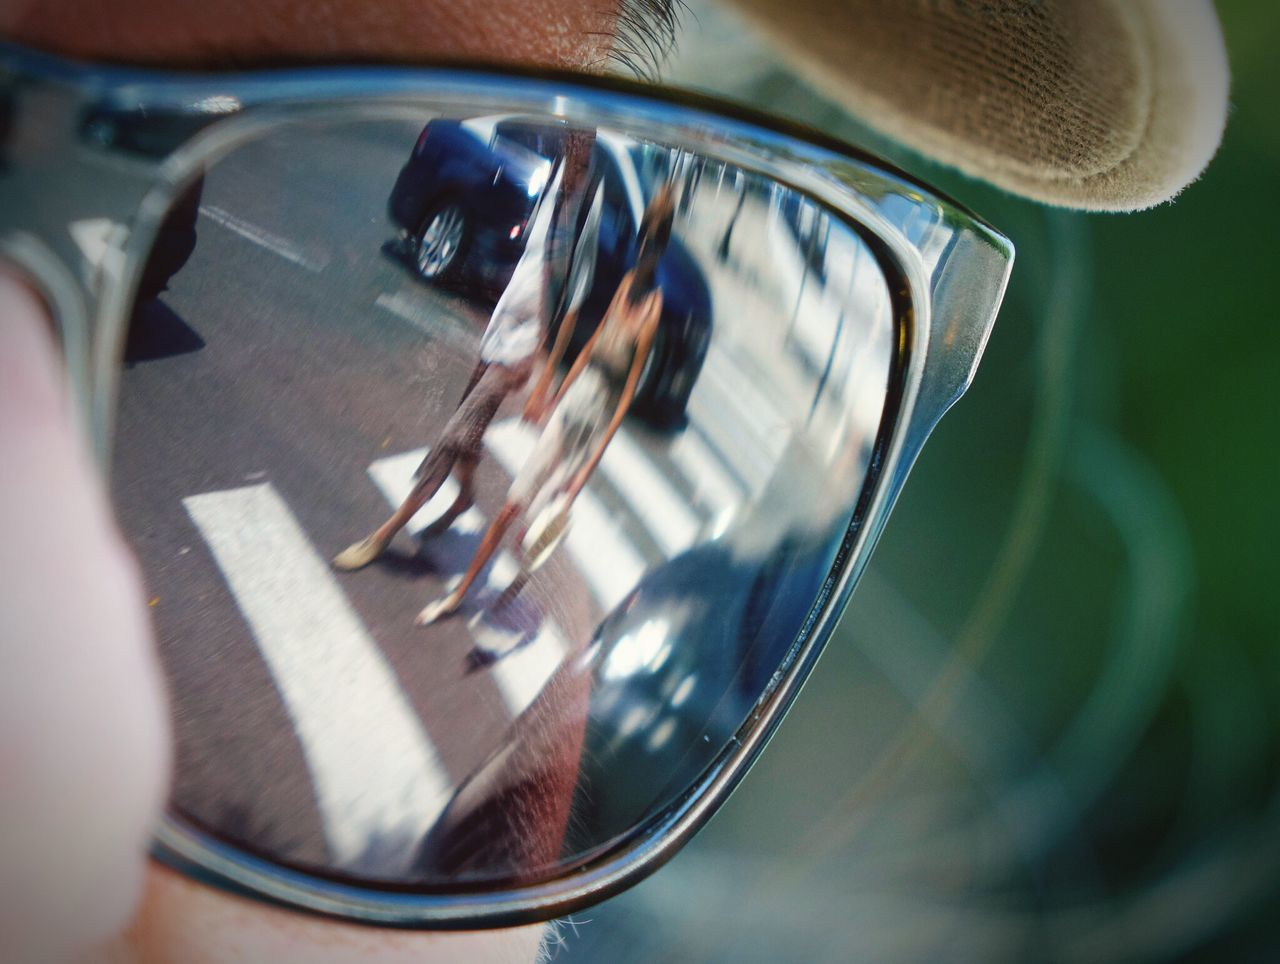 reflection, transportation, mode of transport, one person, real people, land vehicle, side-view mirror, human body part, day, car, outdoors, close-up, road, human hand, lifestyles, men, people